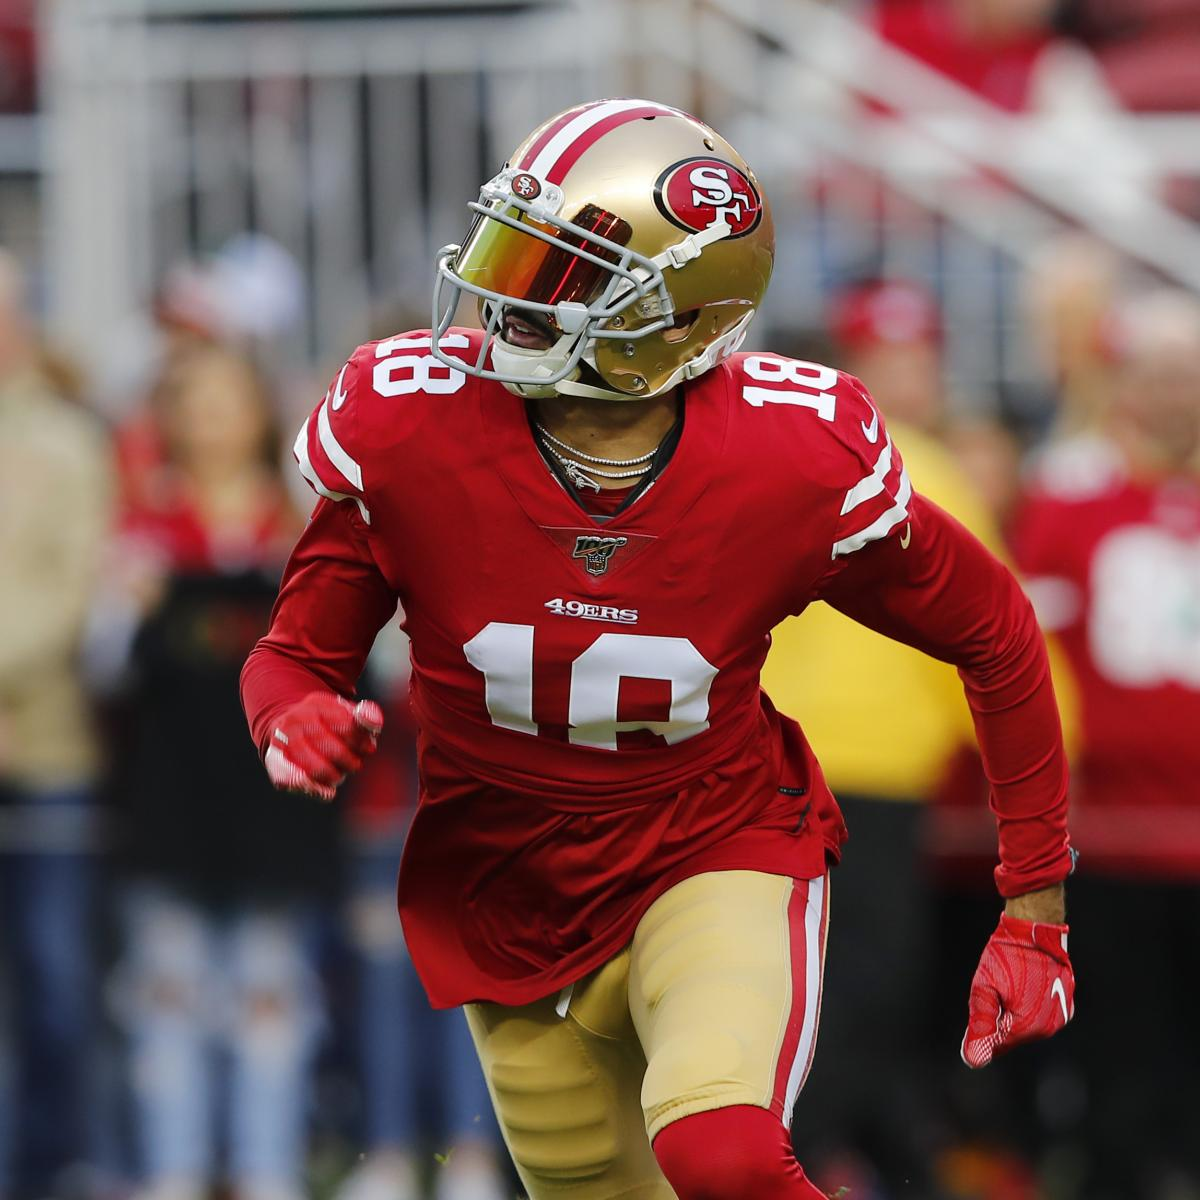 49ers Trade Rumors: Dante Pettis Made Available Ahead of 2020 Deadline